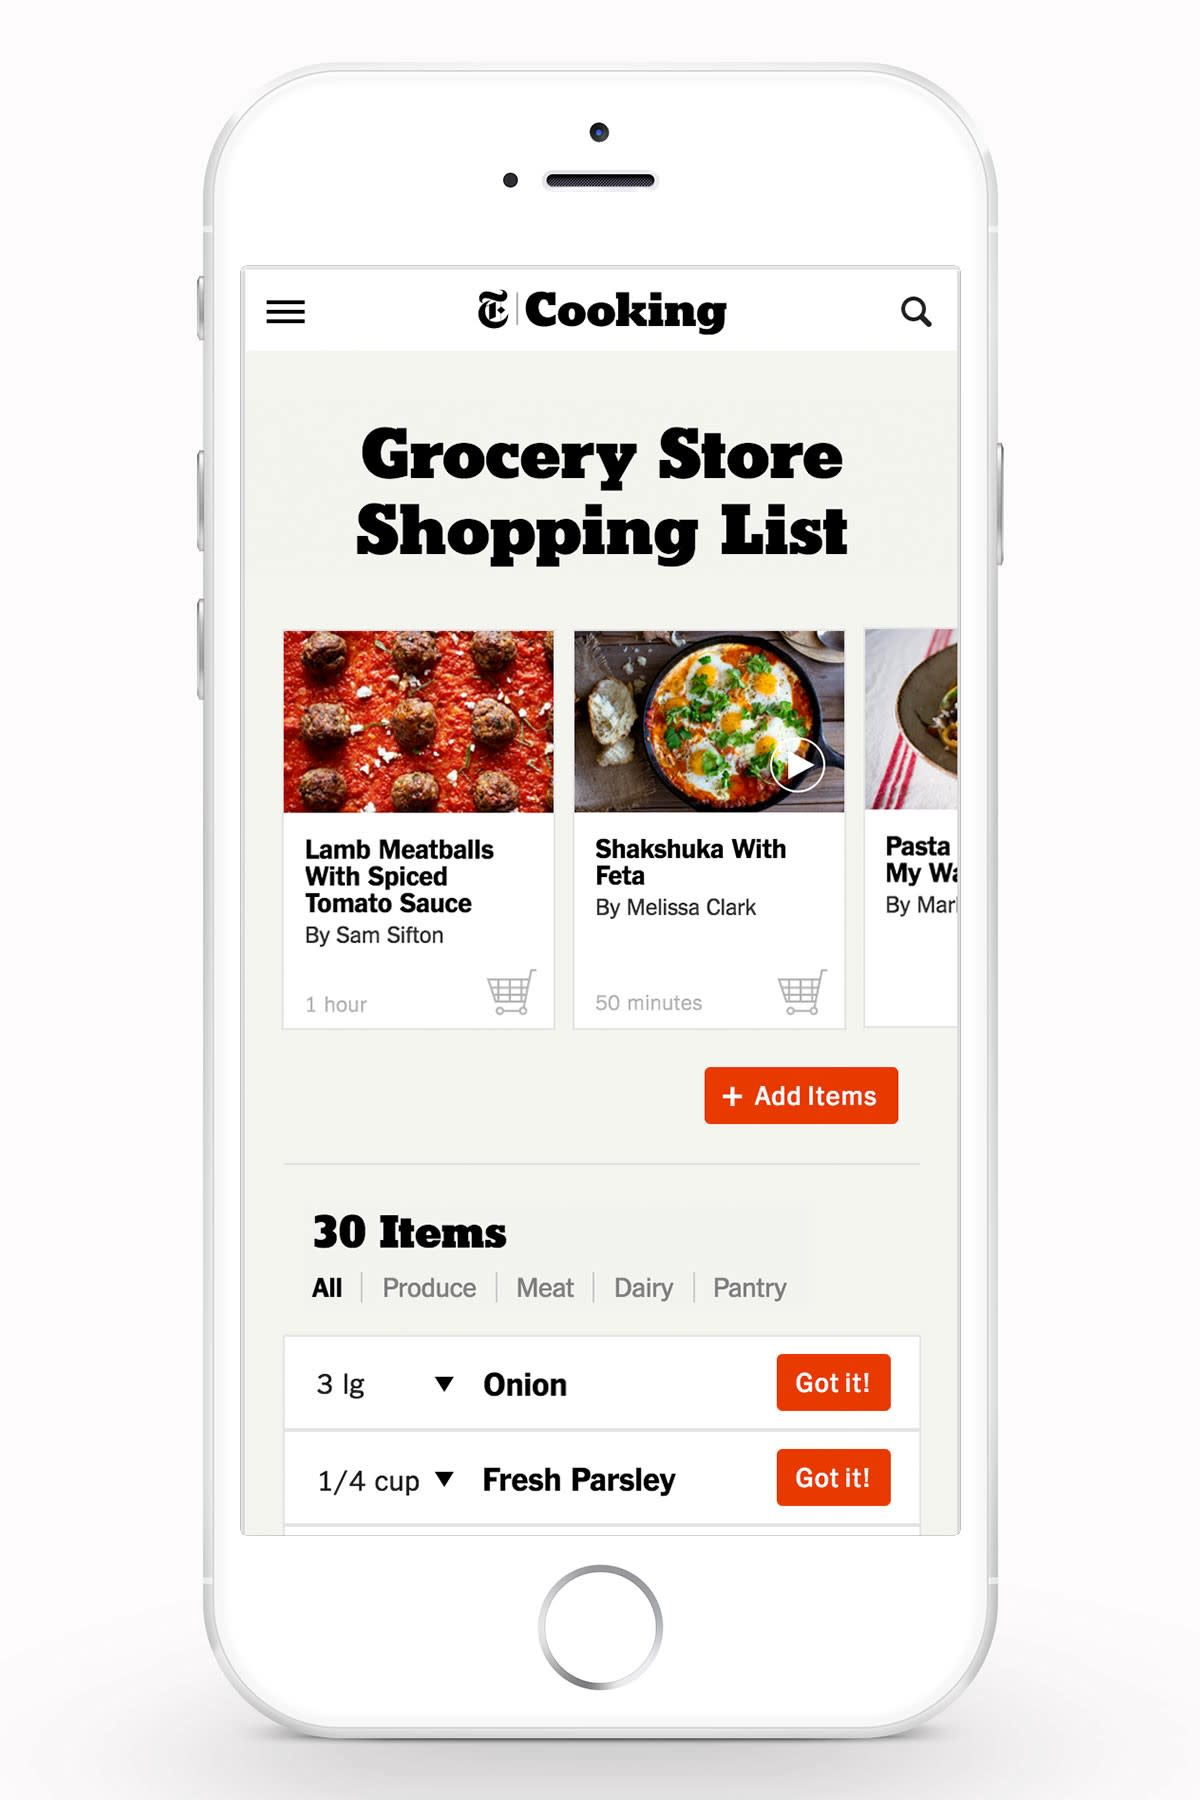 NYTimes Cooking - Shopping List